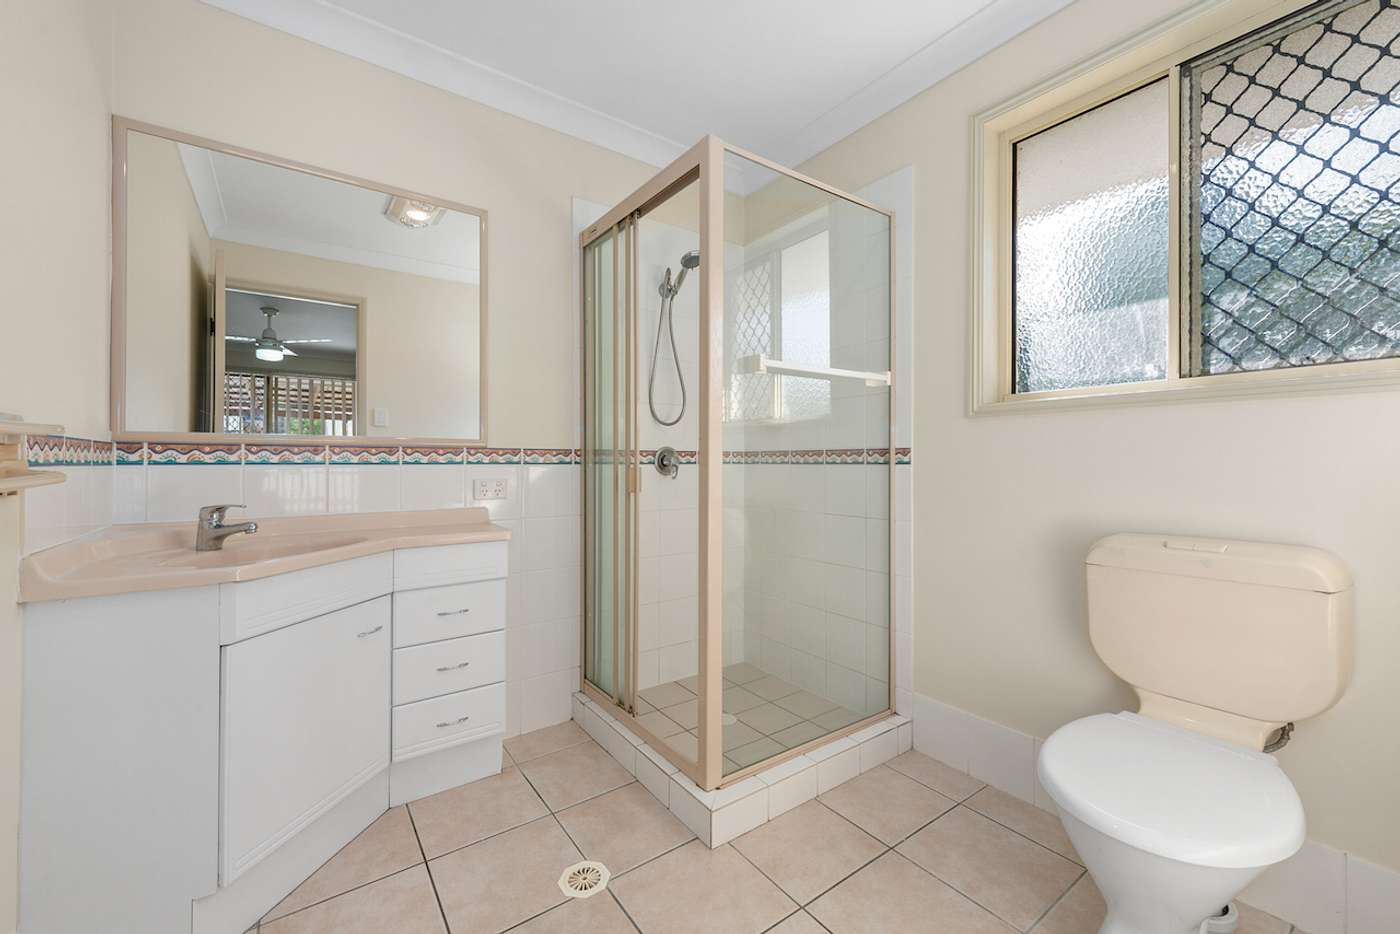 Fifth view of Homely house listing, 66 Bronzewing Crescent, Deception Bay QLD 4508